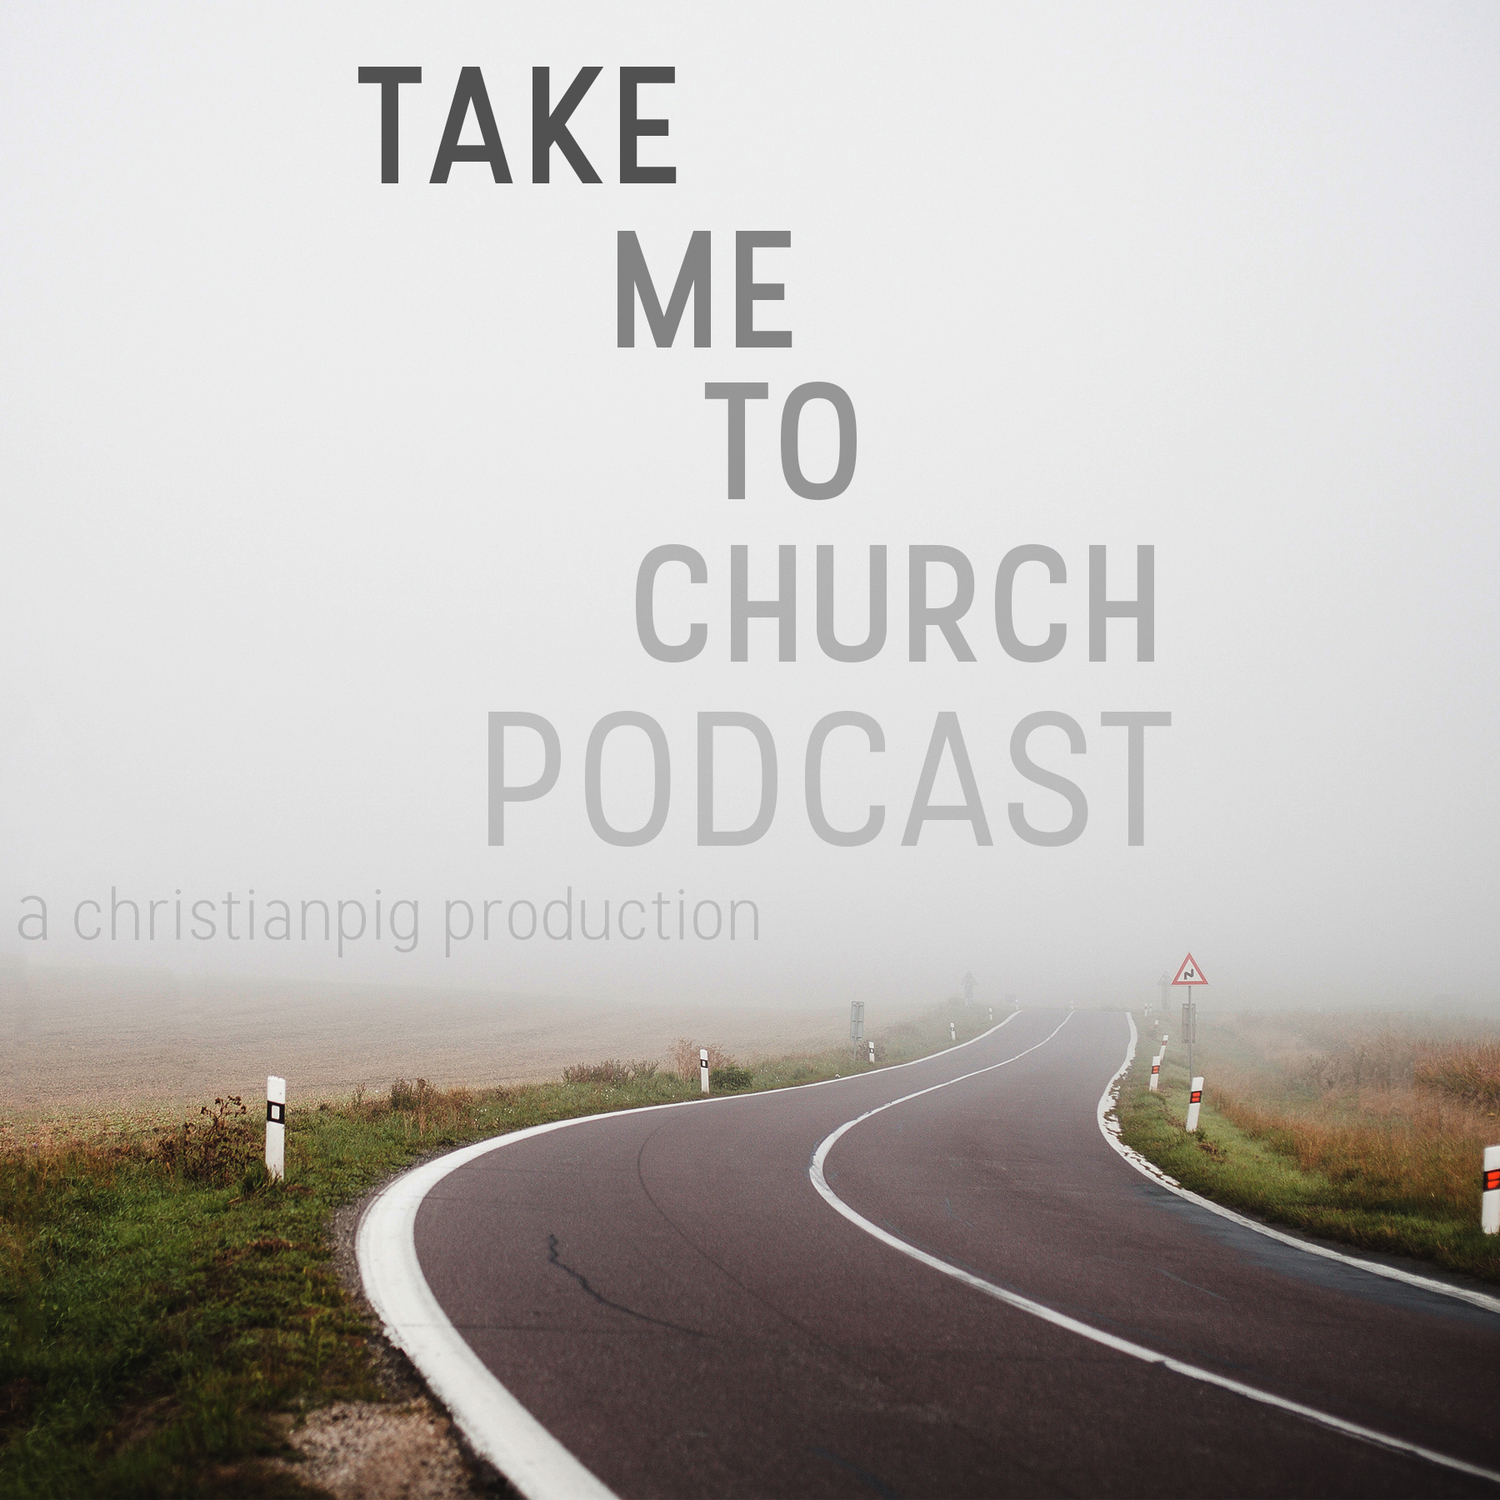 Take Me To Church Podcast